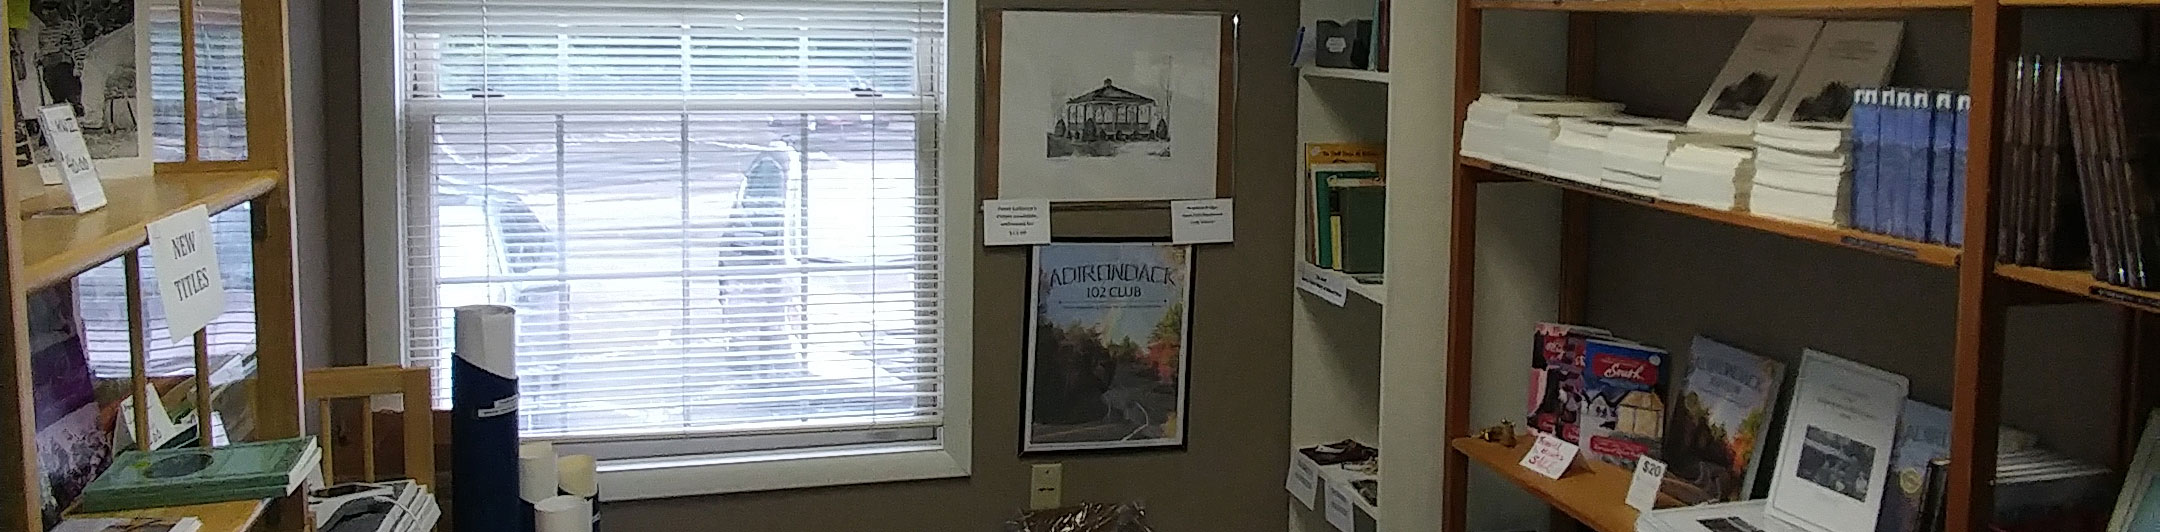 Publications on the History of Warren County NY at the Warren County Historical Society